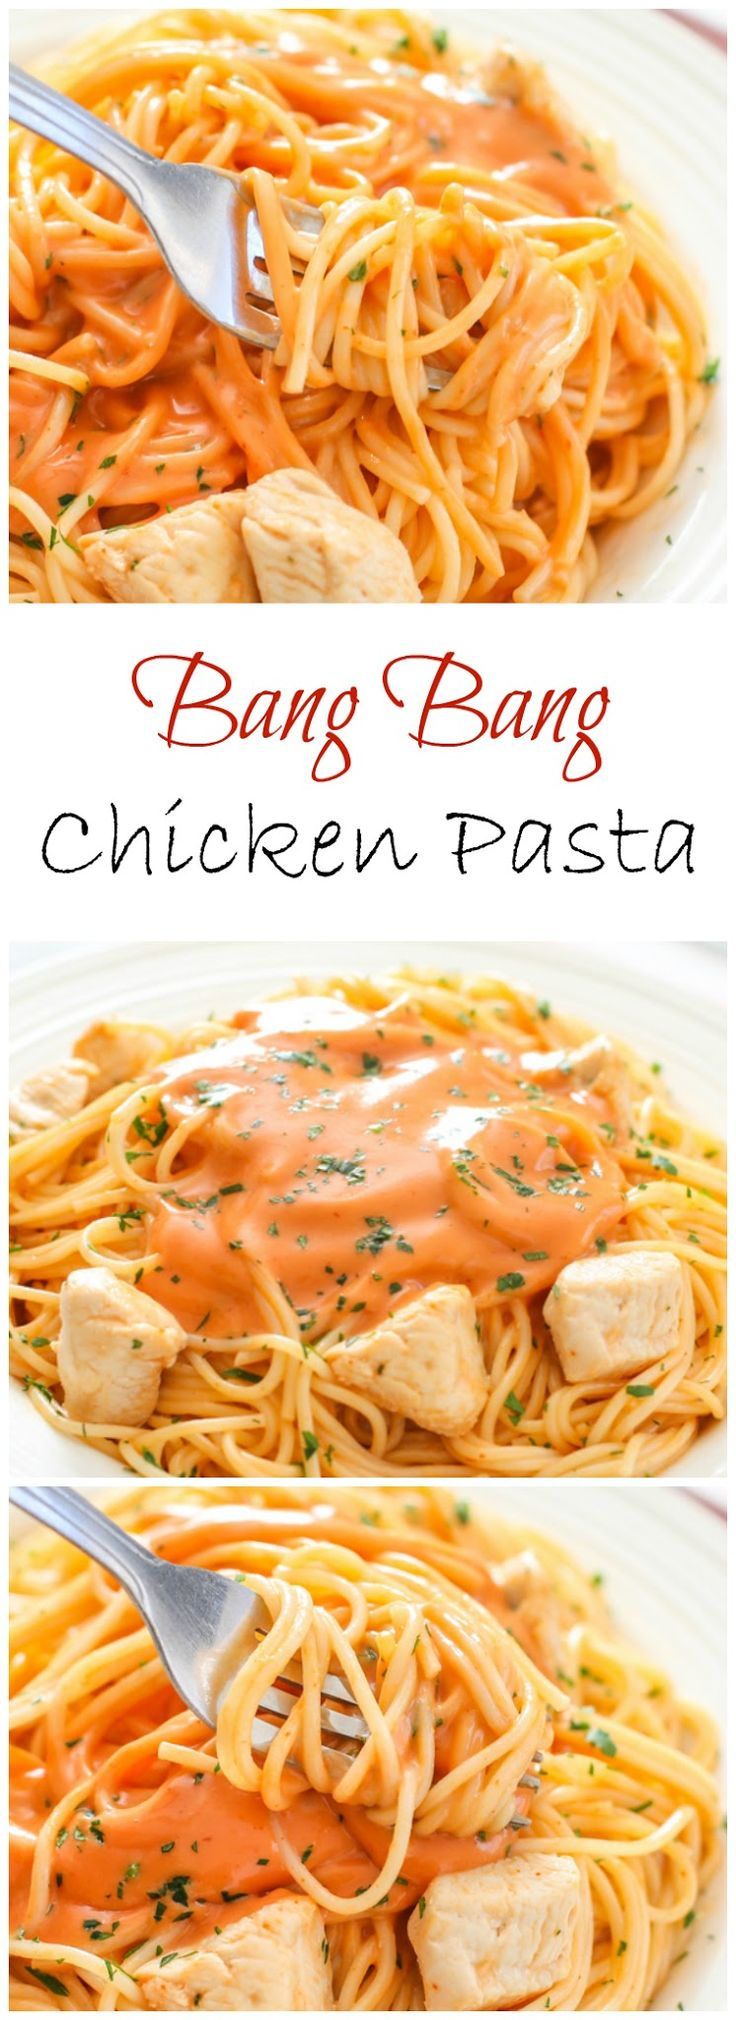 Bang Bang Chicken Pasta. Such an addicting sauce!